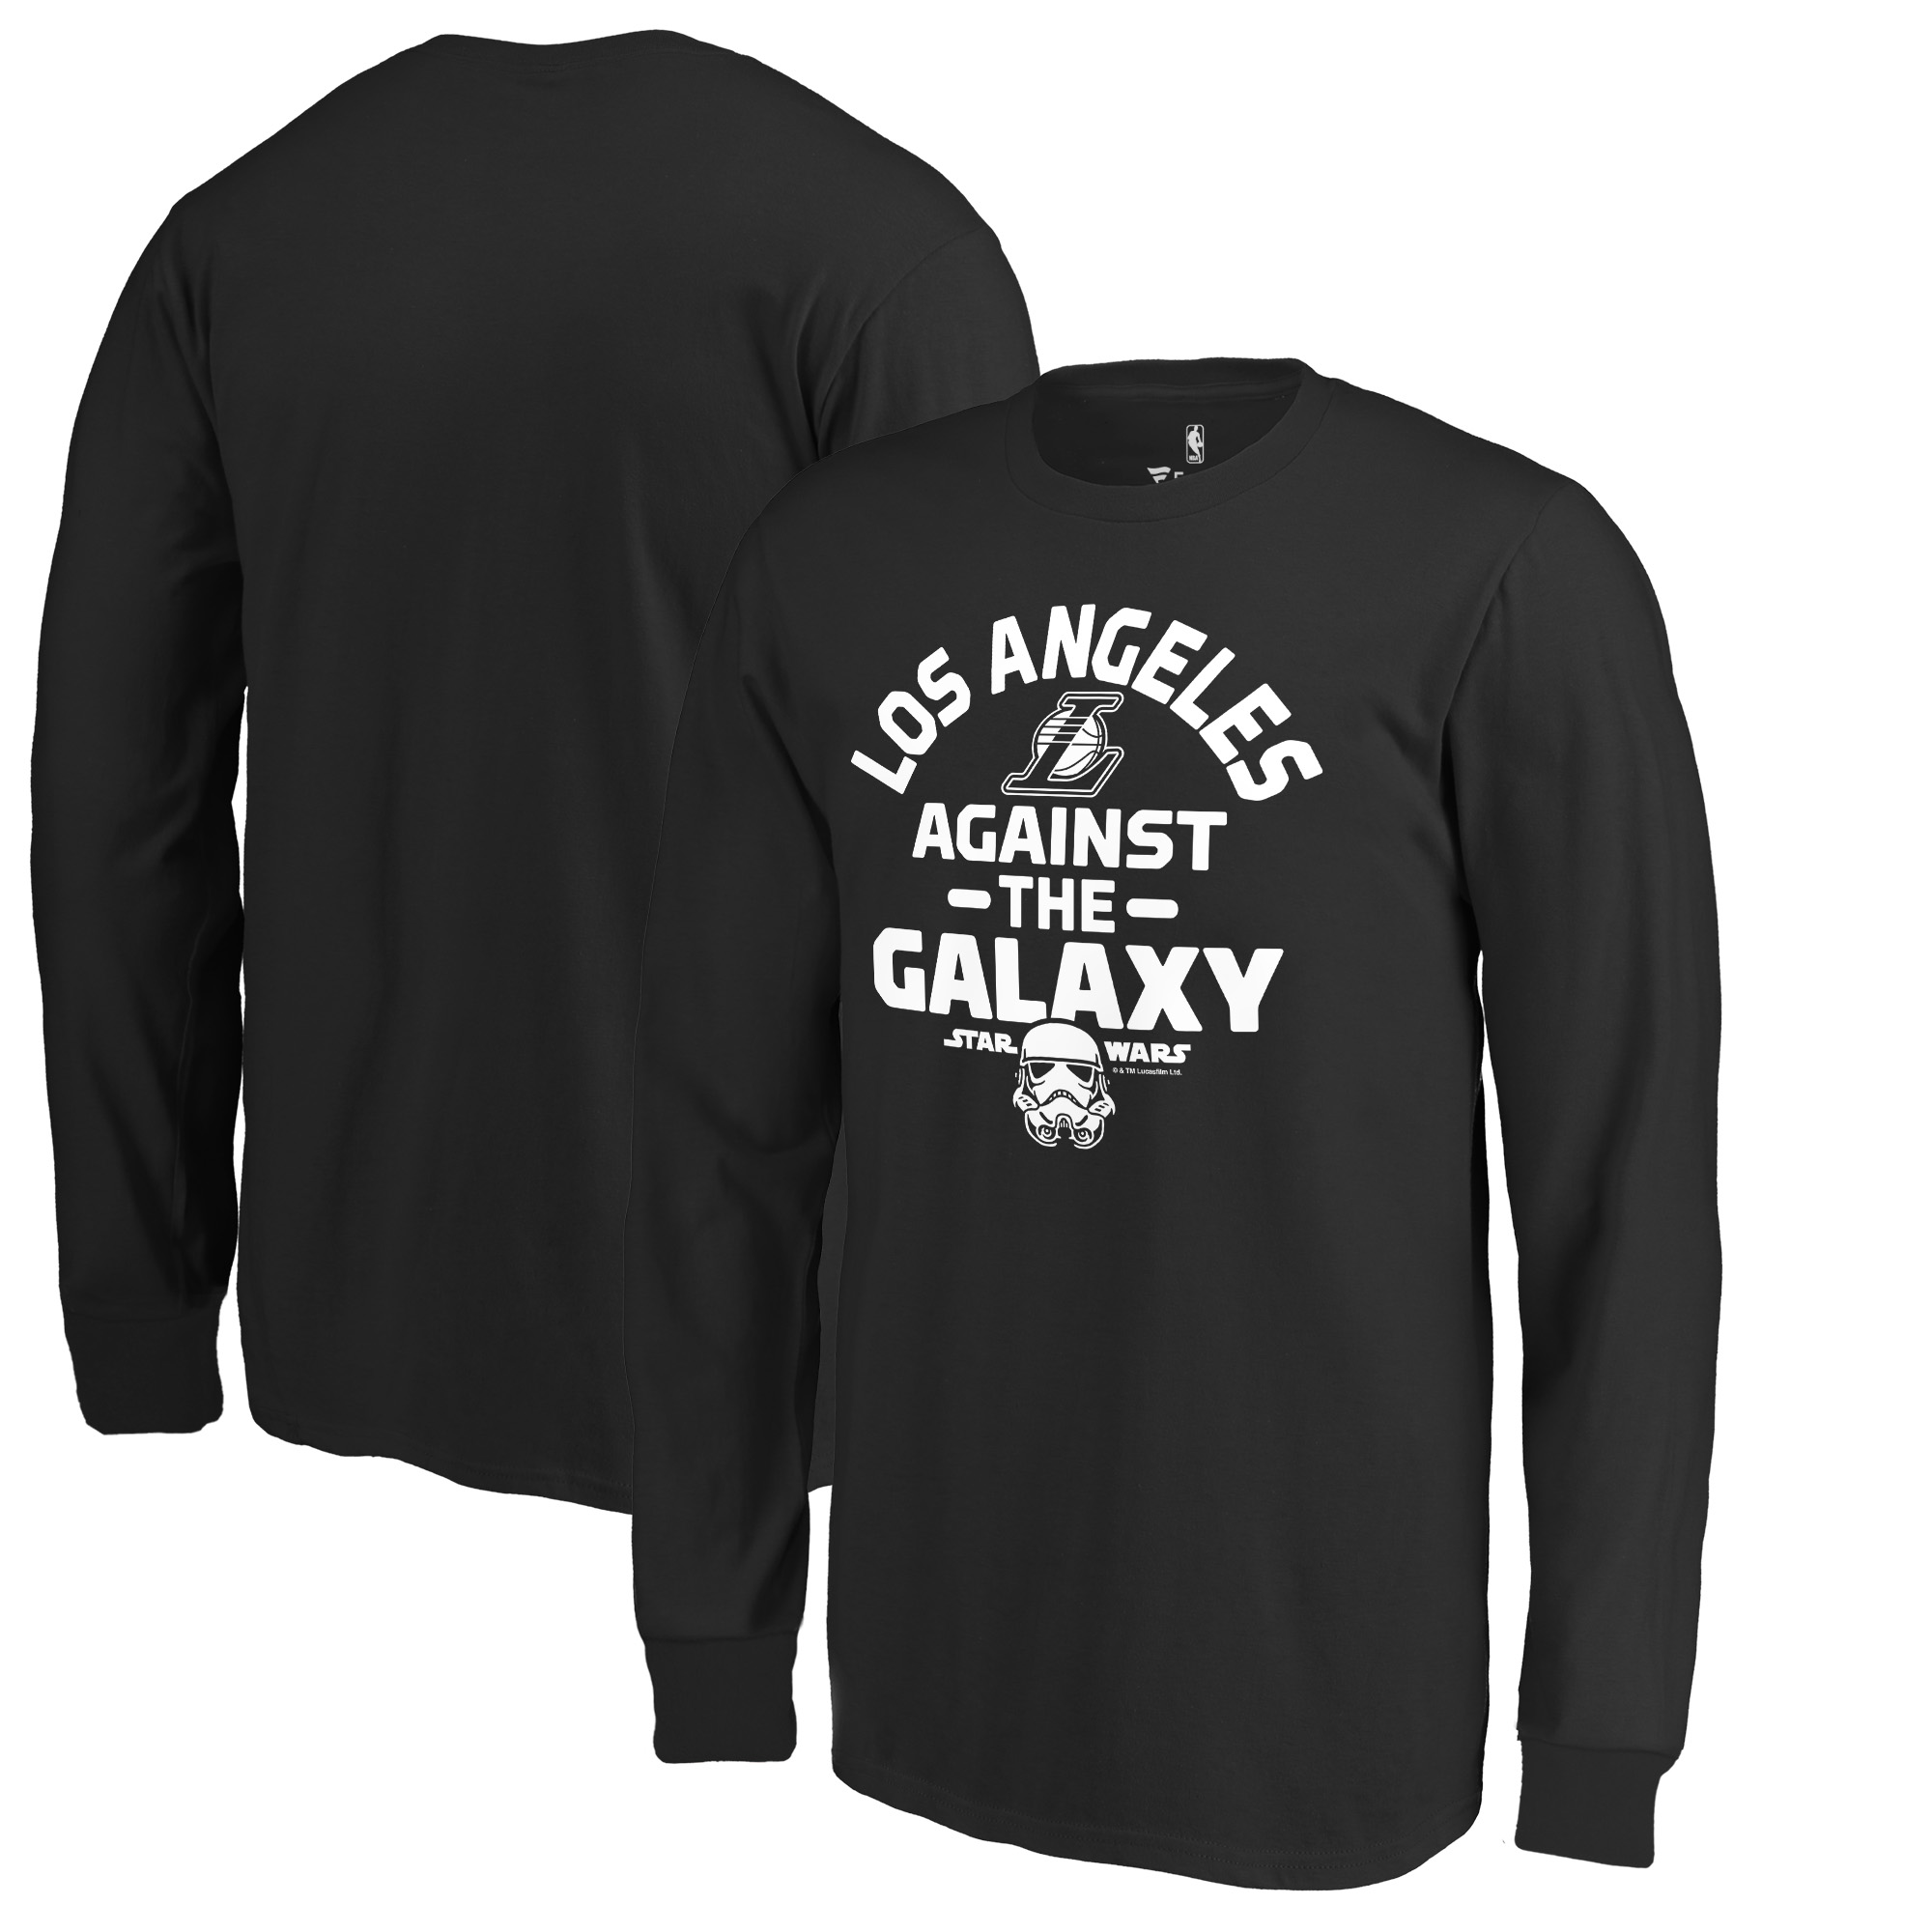 Los Angeles Lakers Fanatics Branded Youth Star Wars Against the Galaxy Long Sleeve T-Shirt - Black